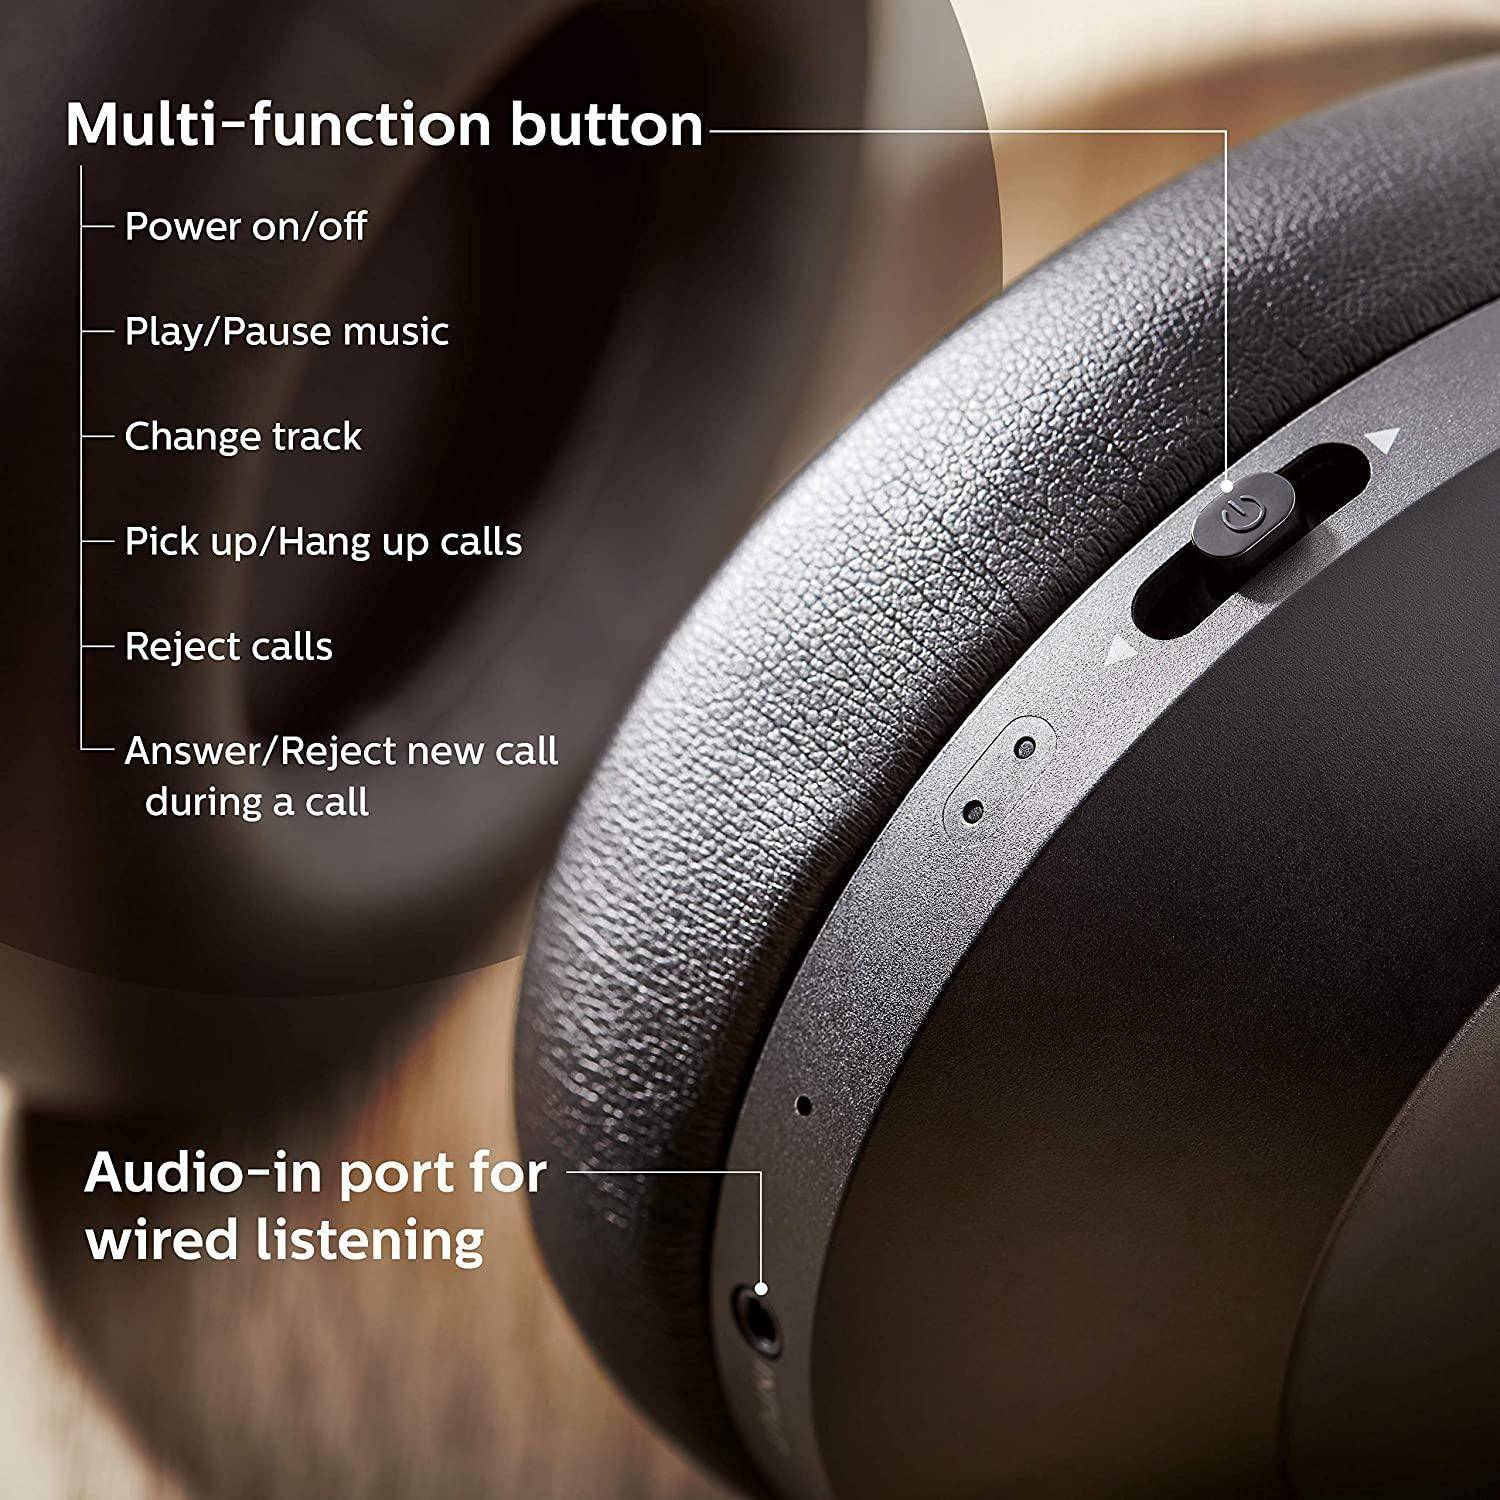 Multifunctional button